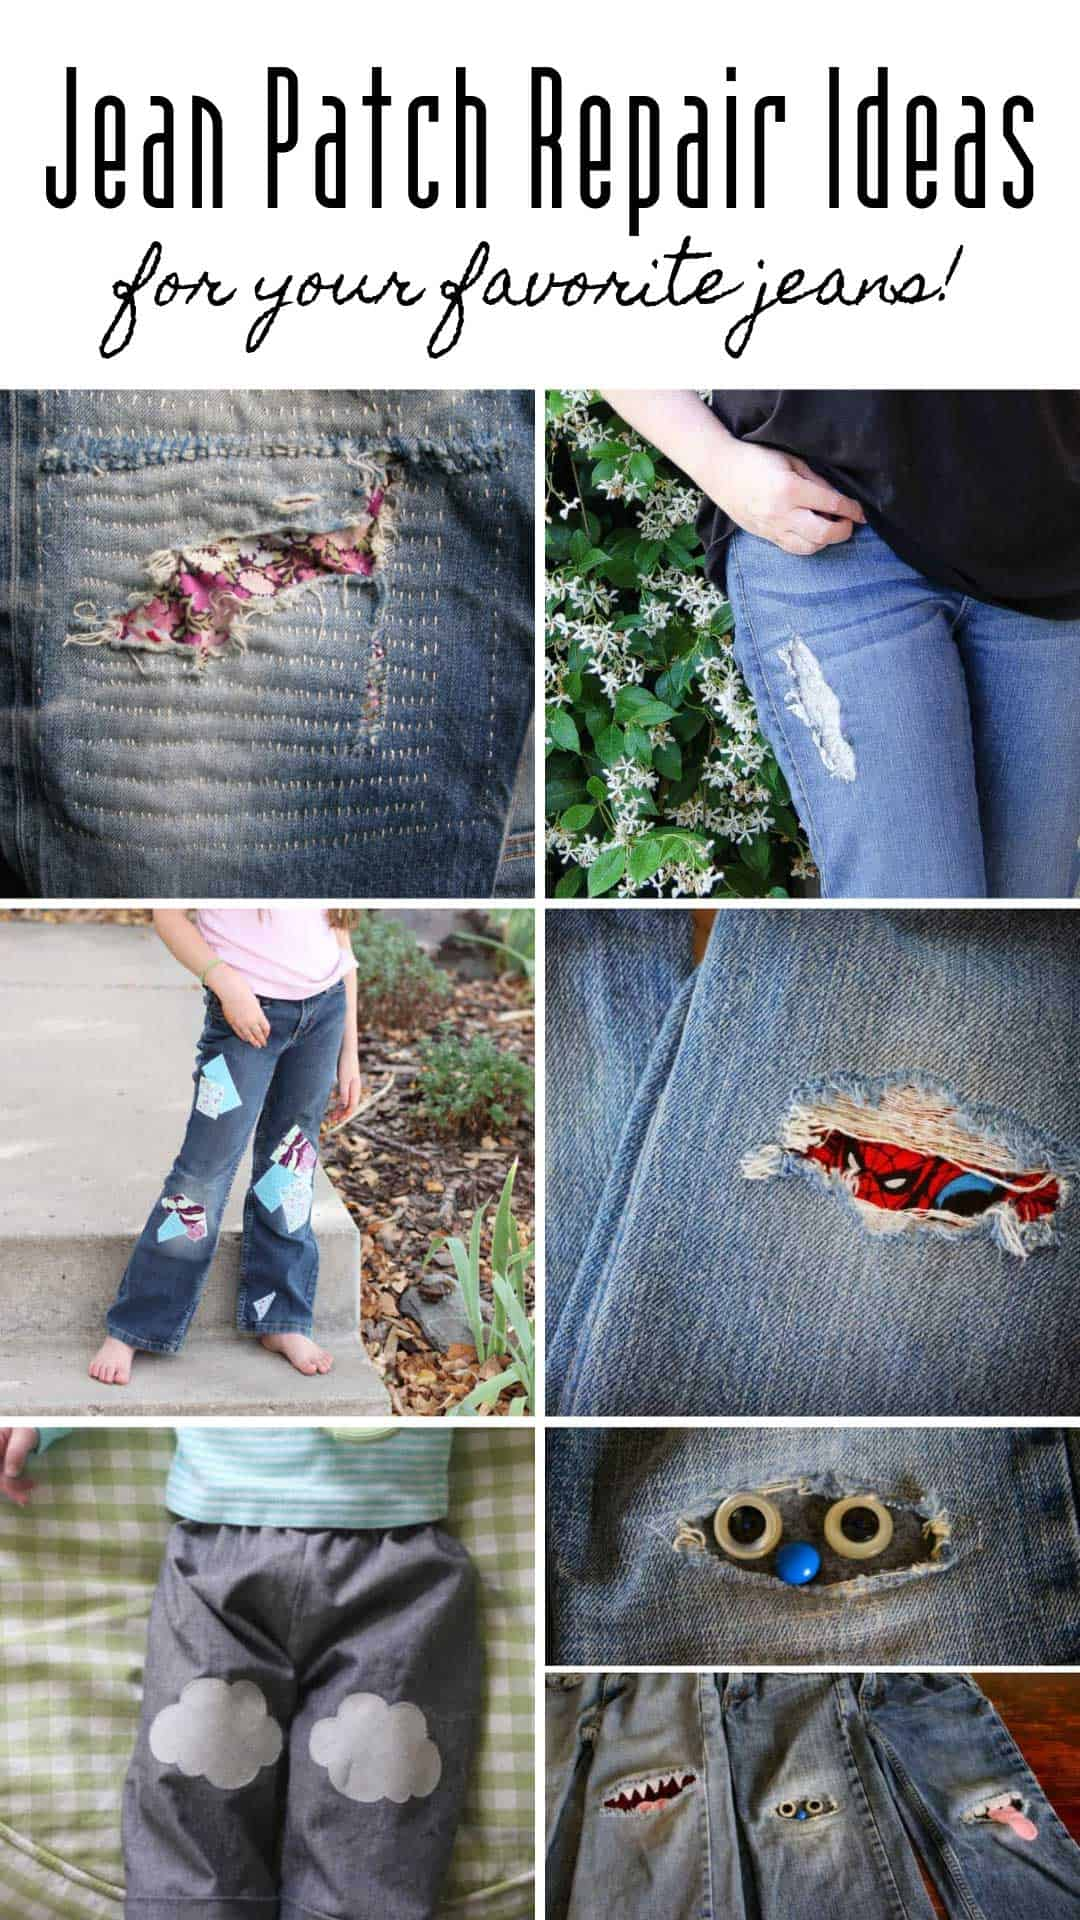 LOVING these jean patch repair ideas! They are ways to patch up kids and adult jeans and they look great!